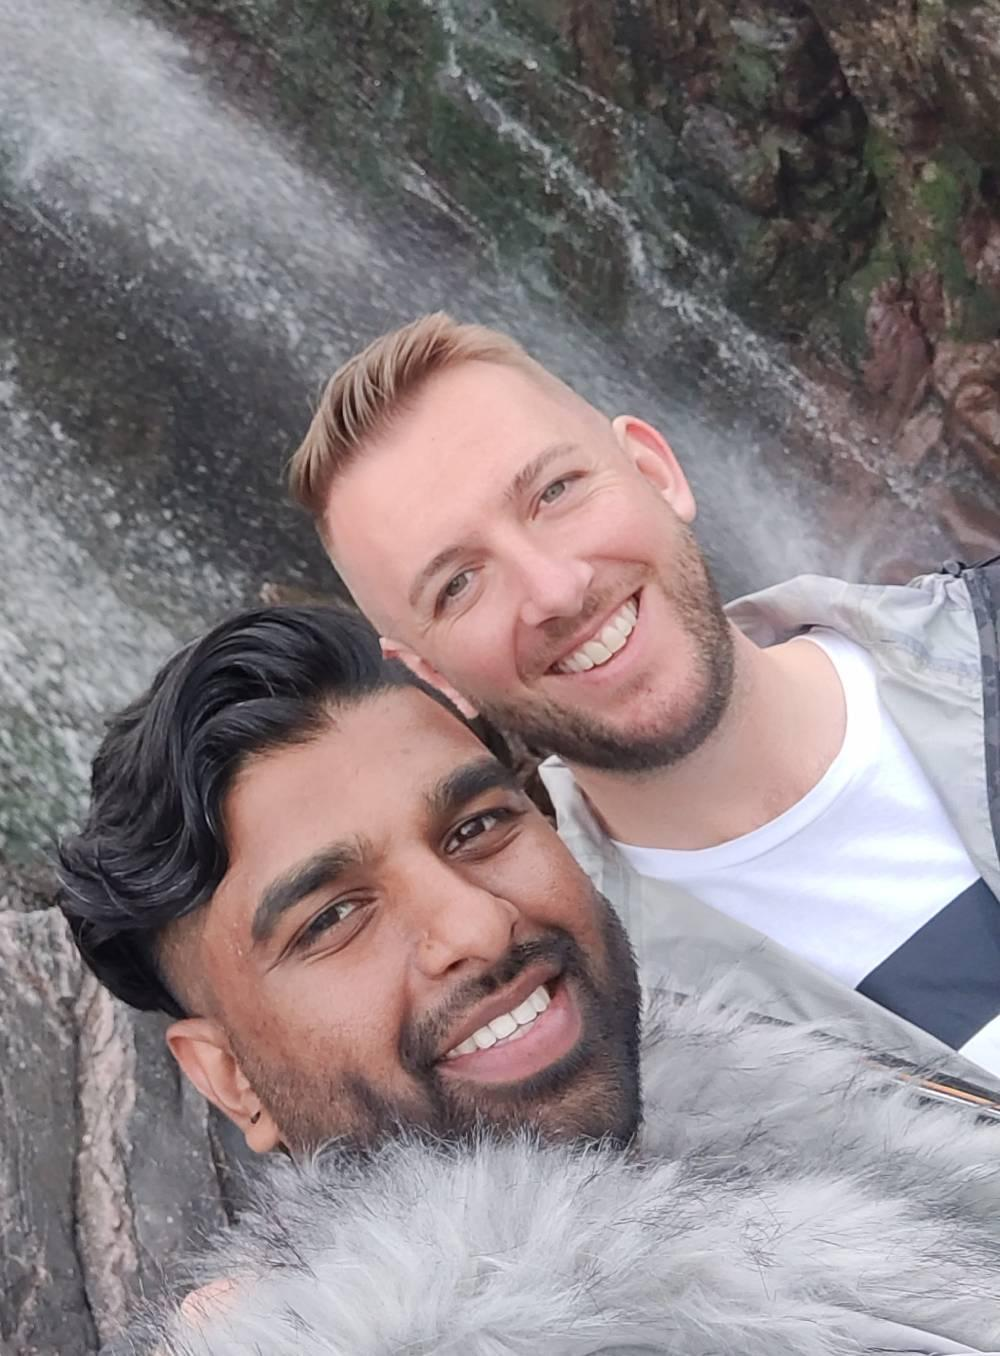 Two men standing in front of a waterfall